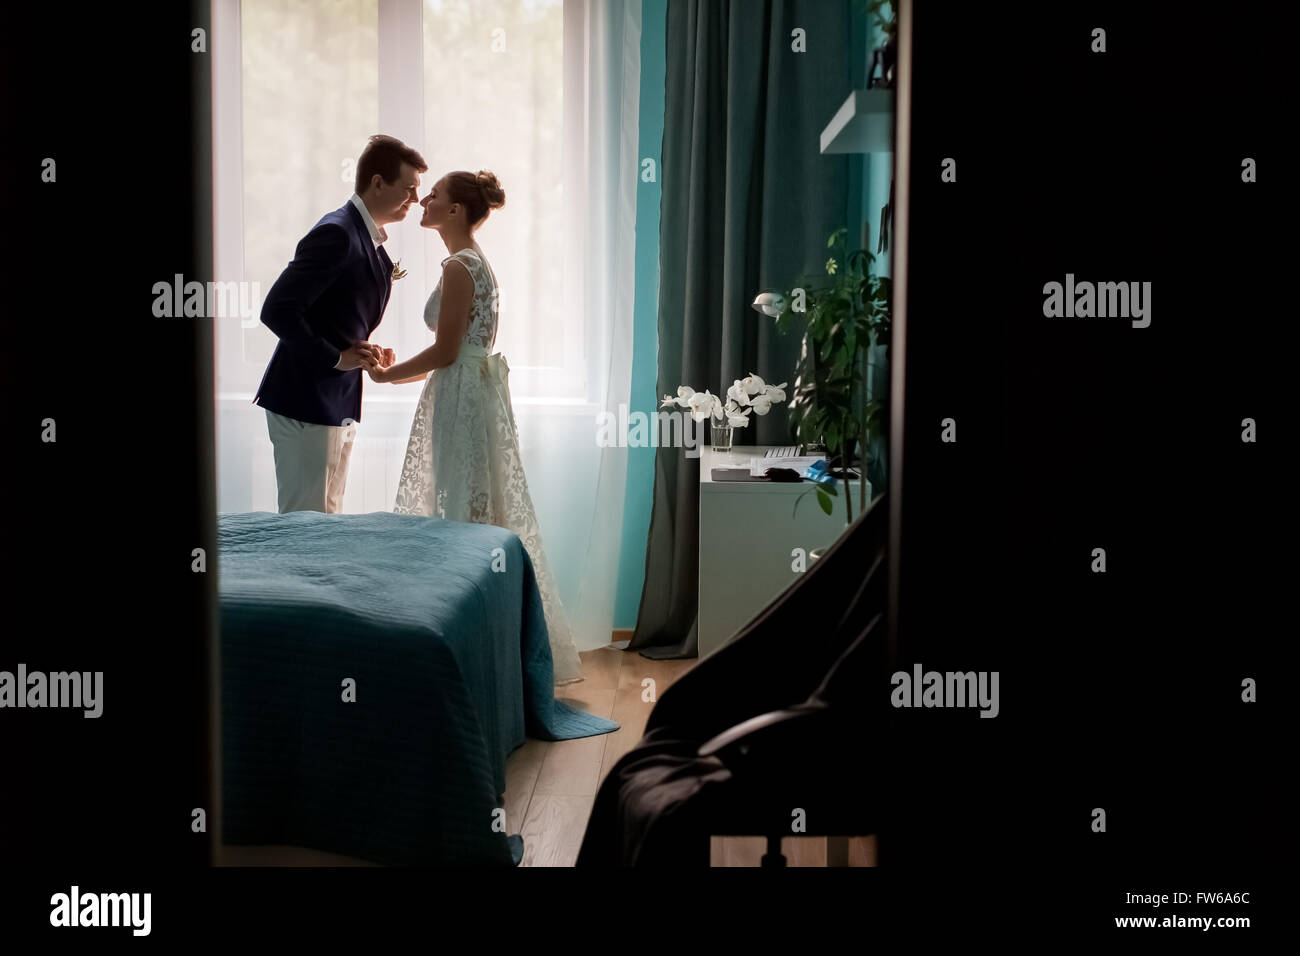 Photo full of dark silhouette of bridal couple bride and groom kissing in window  Interior bedrooms on indoor background, - Stock Image